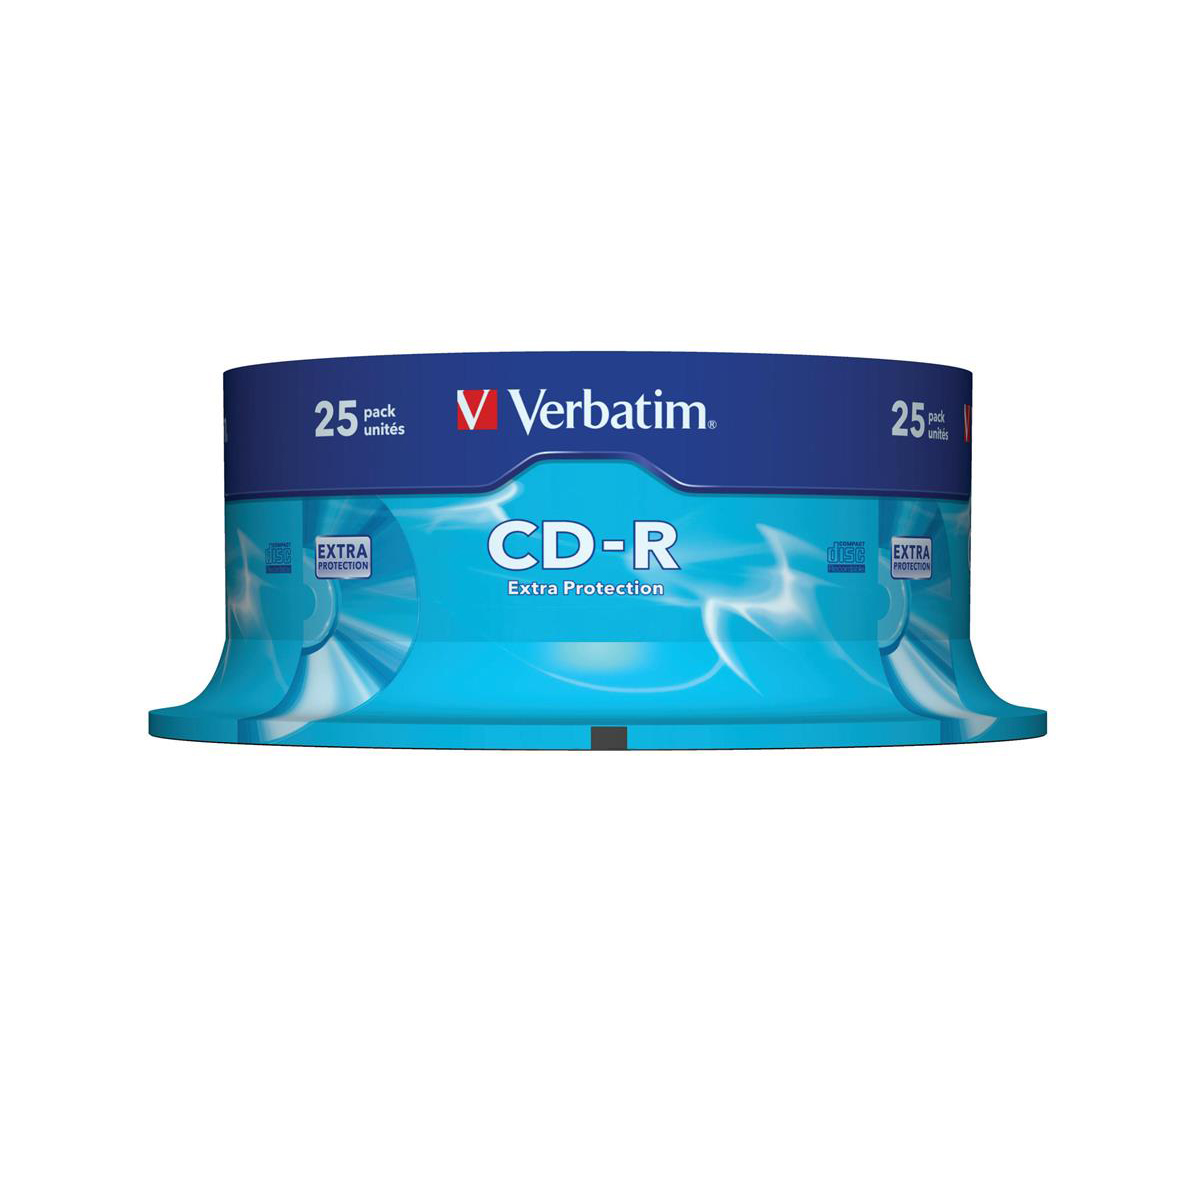 Verbatim CD-R Extra Protection Ref 43432-1 [Pack 25]